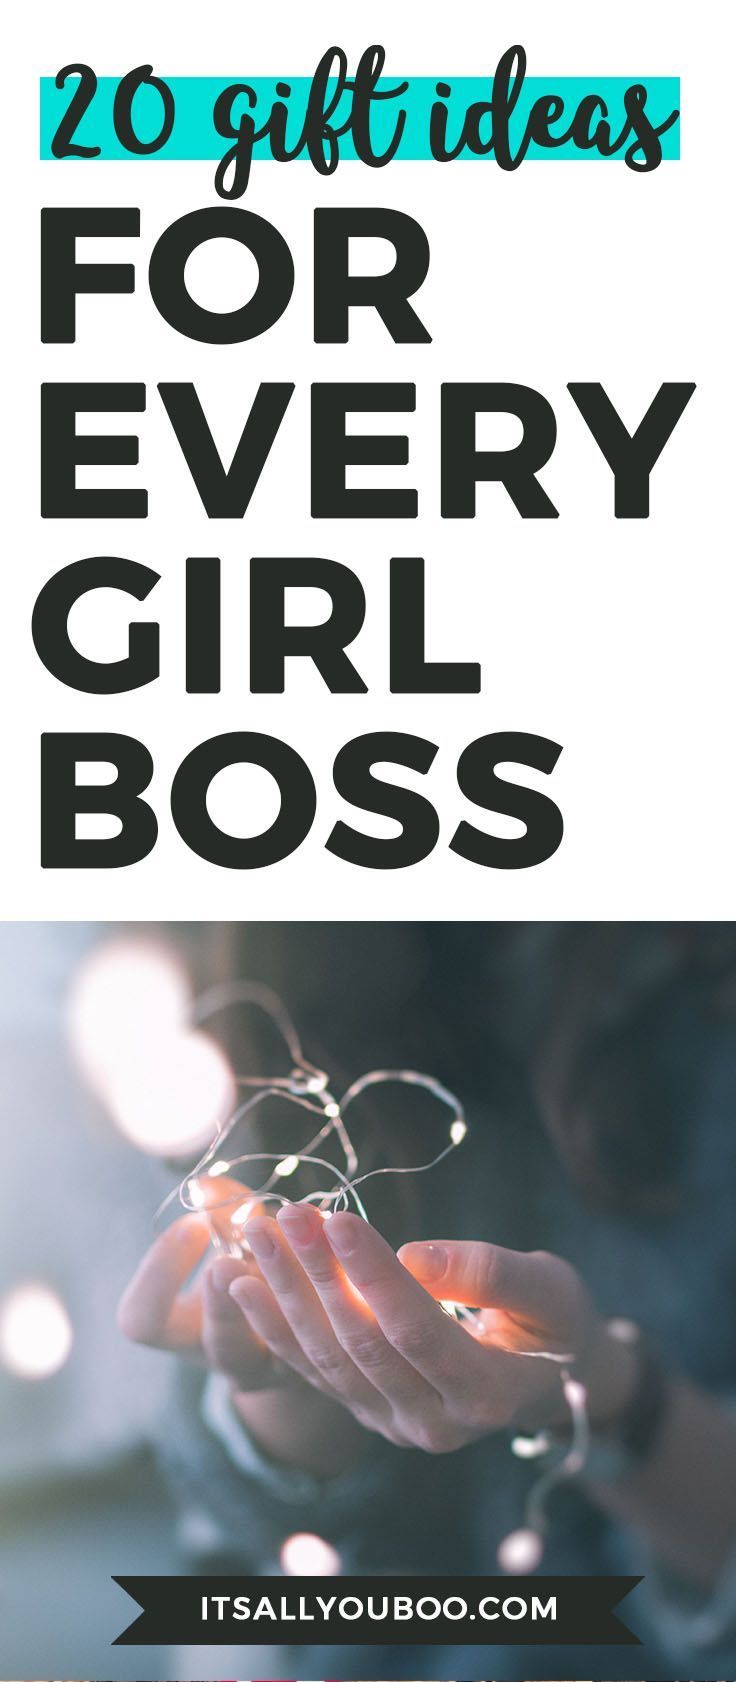 20 gift ideas for every girl boss its all you boo